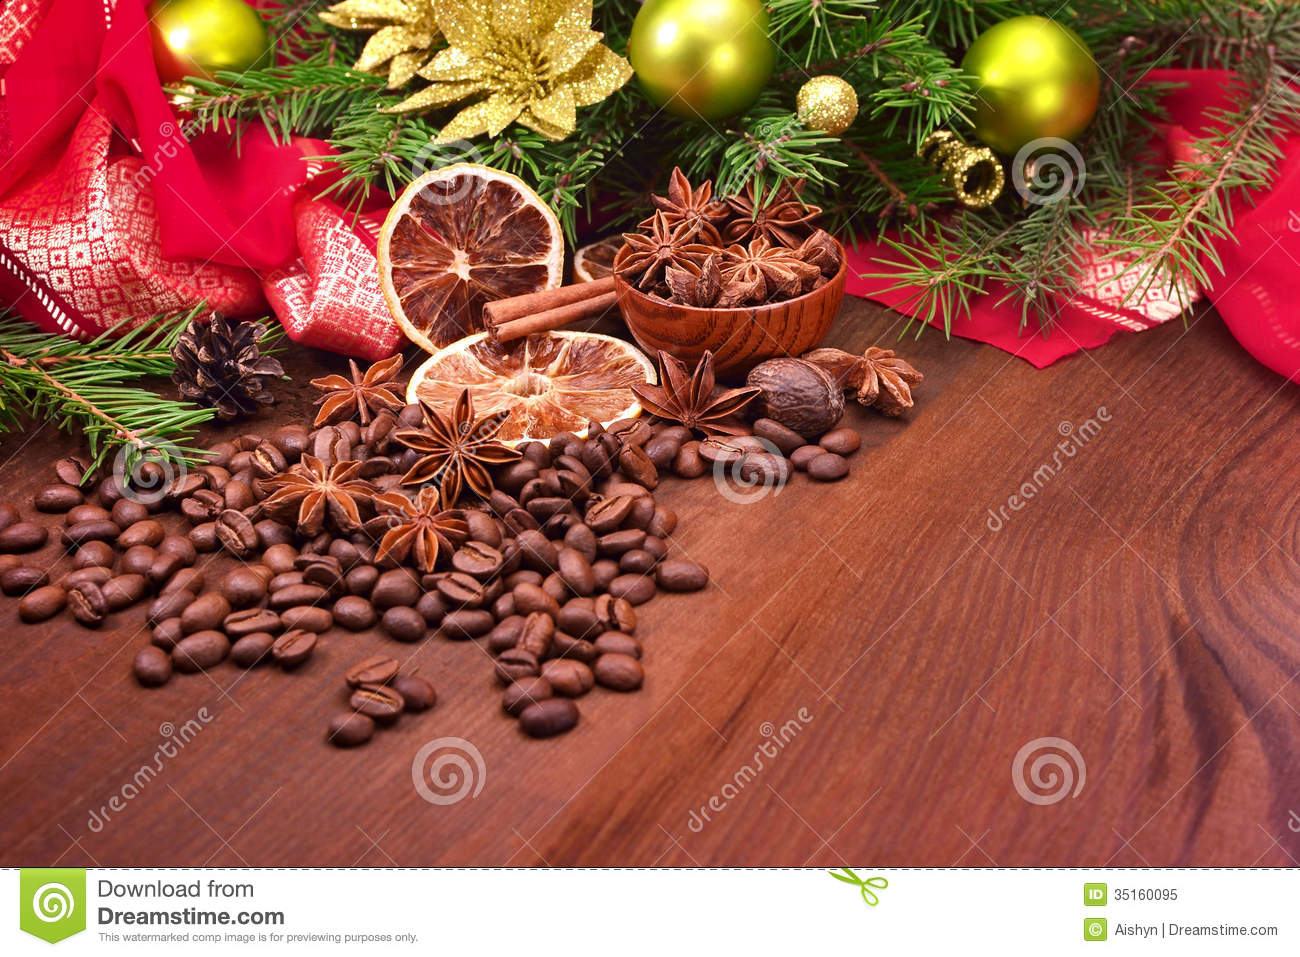 Coffee Christmas Ornaments.Spices And Christmas Tree With Decorations Stock Image